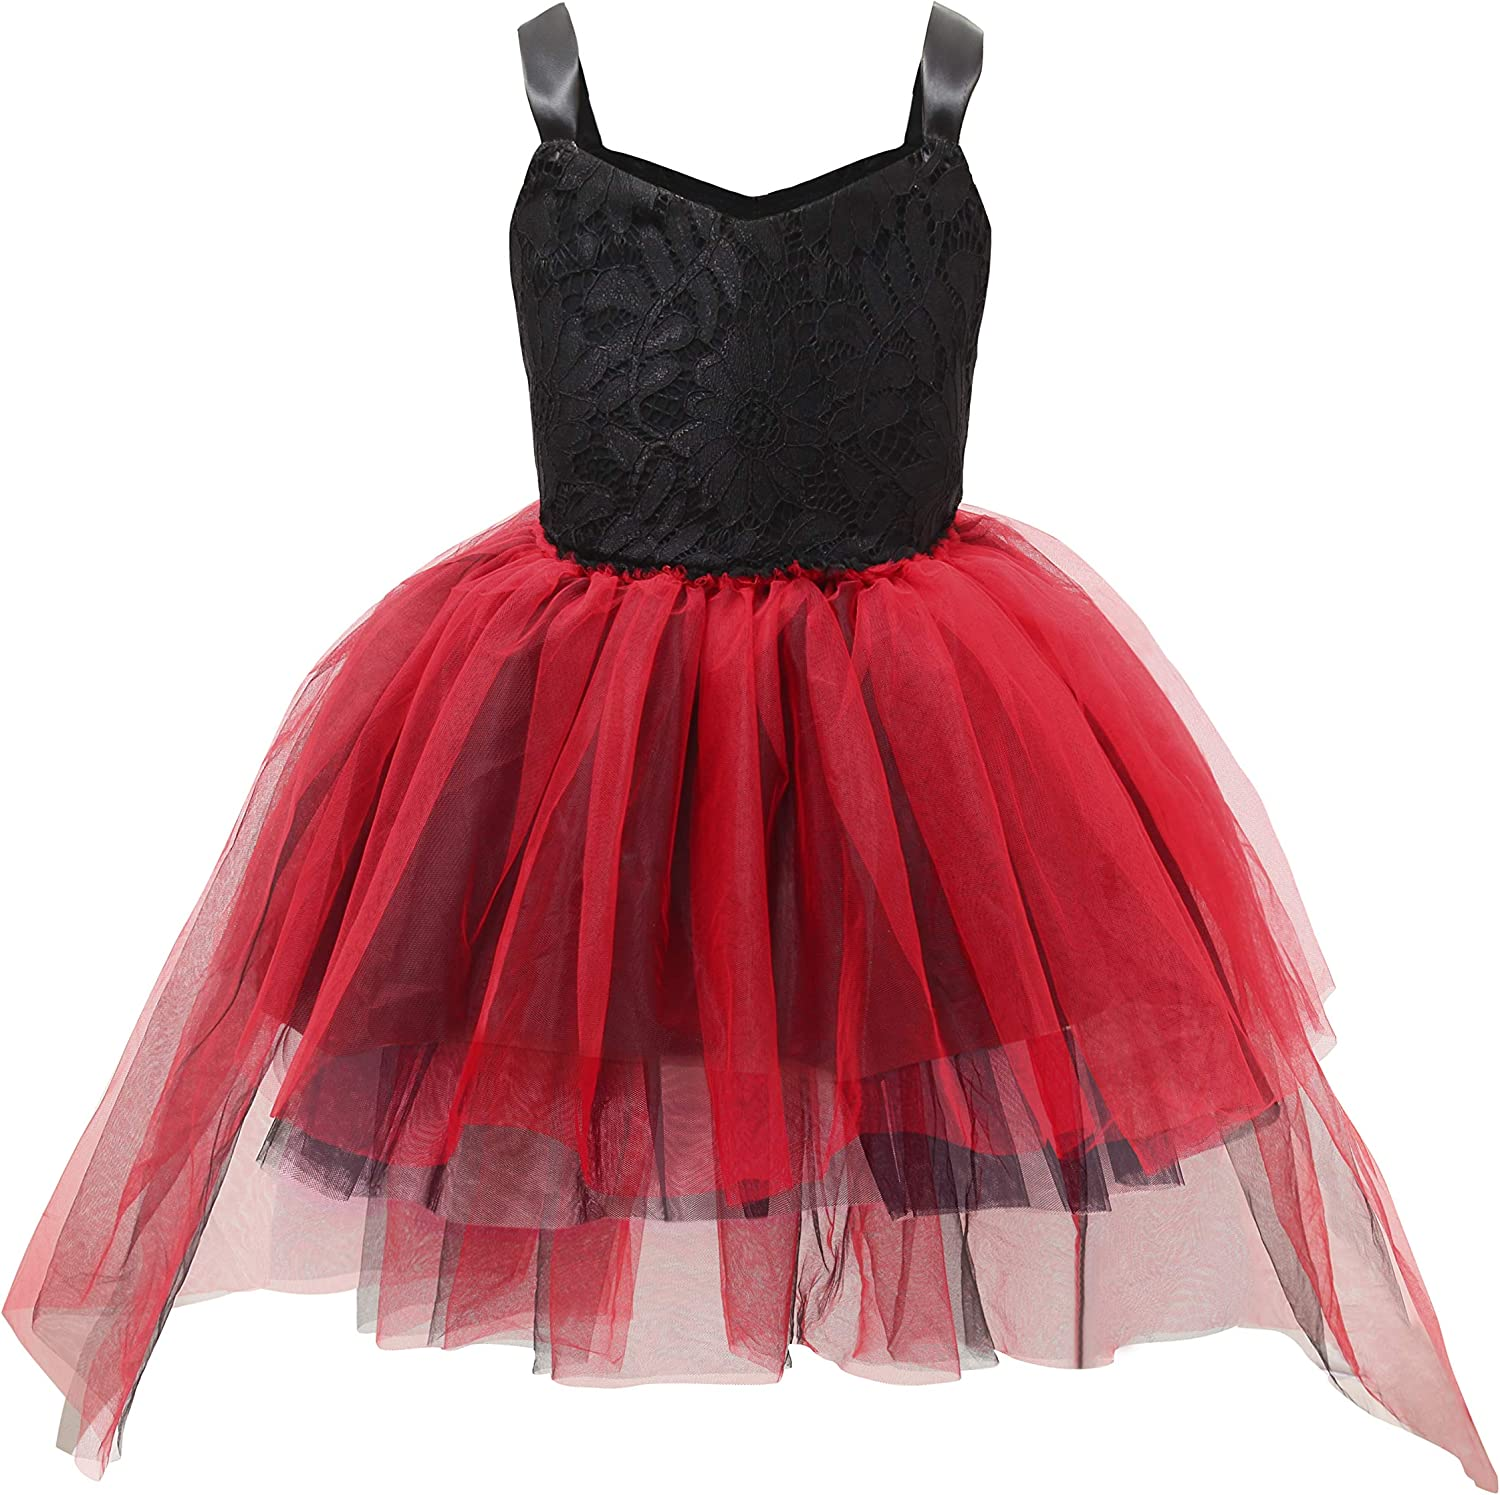 Girls Dress Shinning Sequins Tulle Layers Party Pageant Black Age 2-10 Years